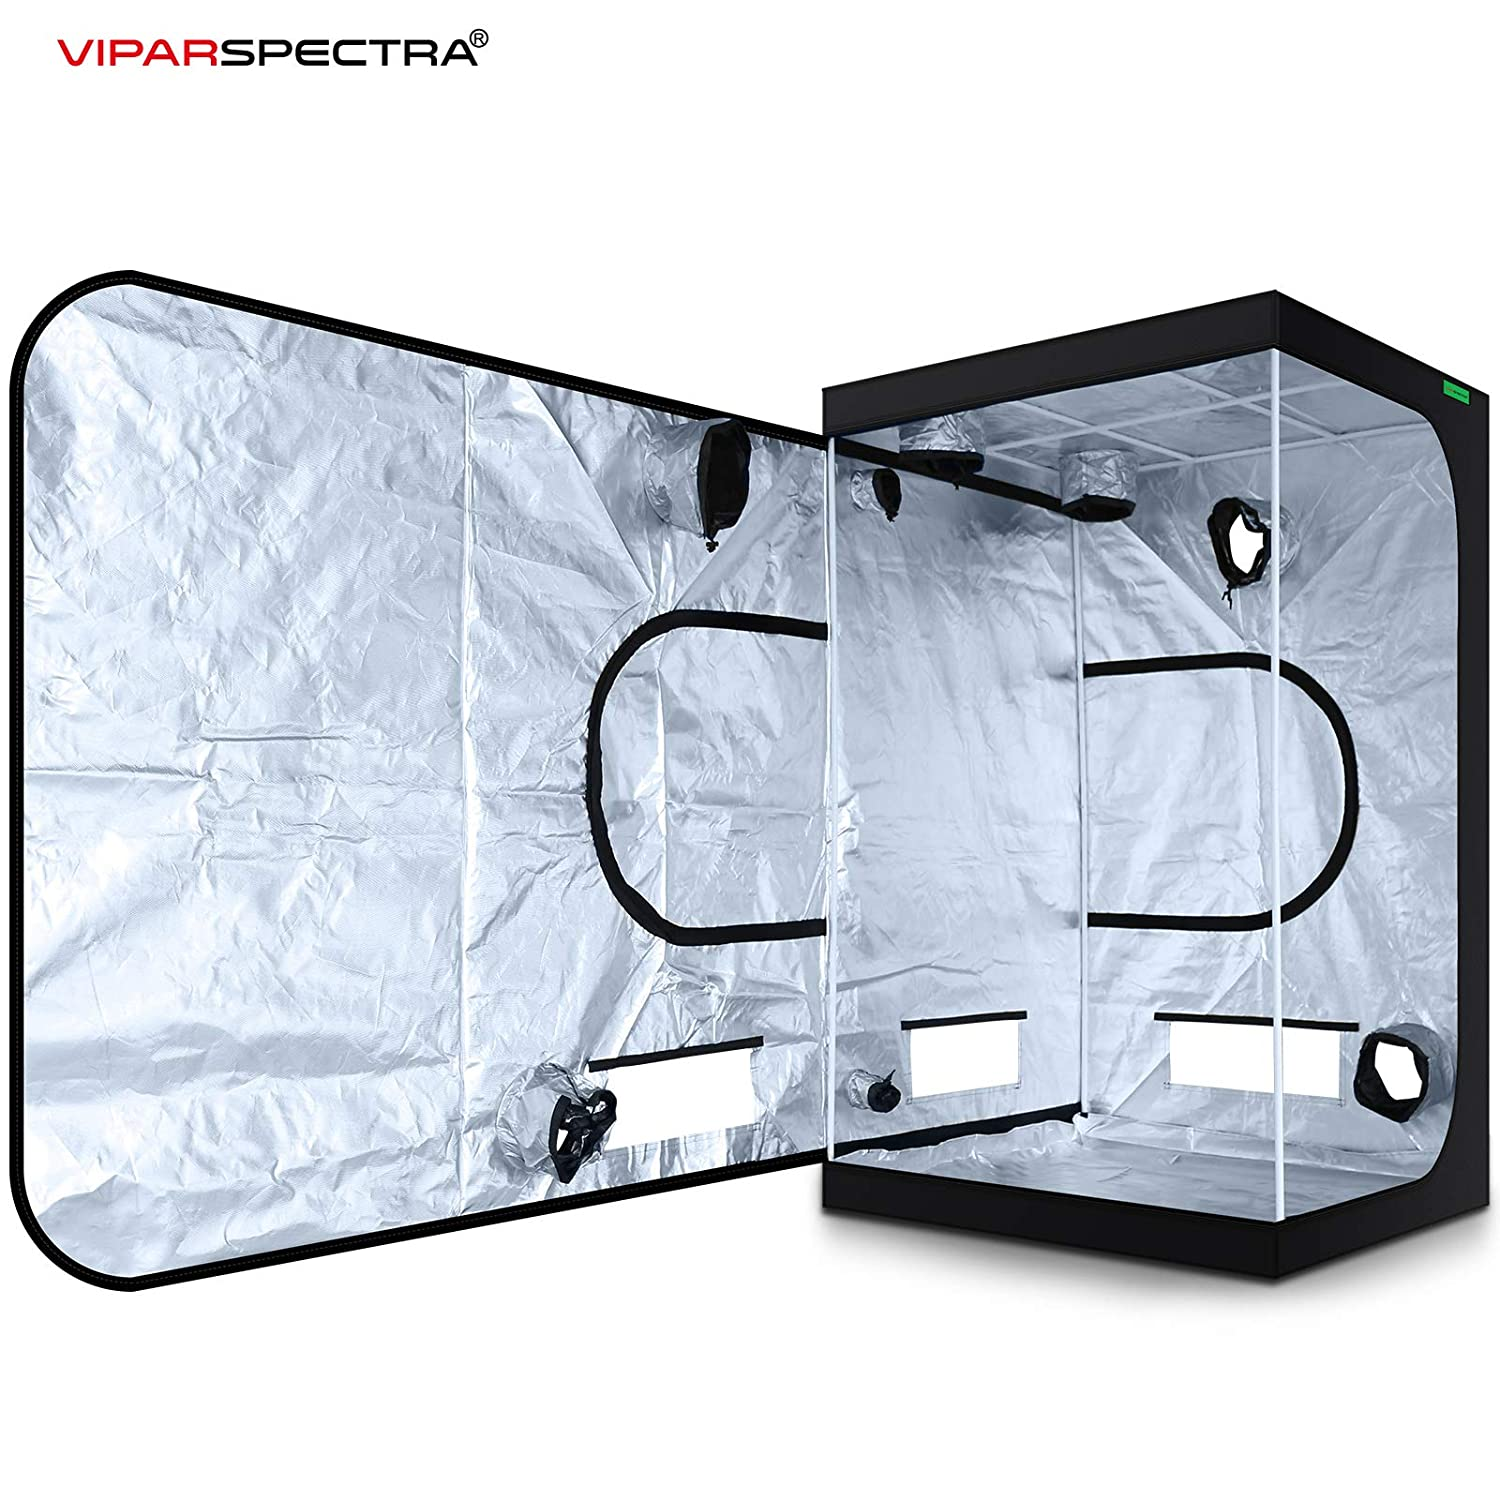 VIPARSPECTRA 48 x48 x80 Reflective 600D Mylar Hydroponic Grow Tent for Indoor Plant Growing 4 x4